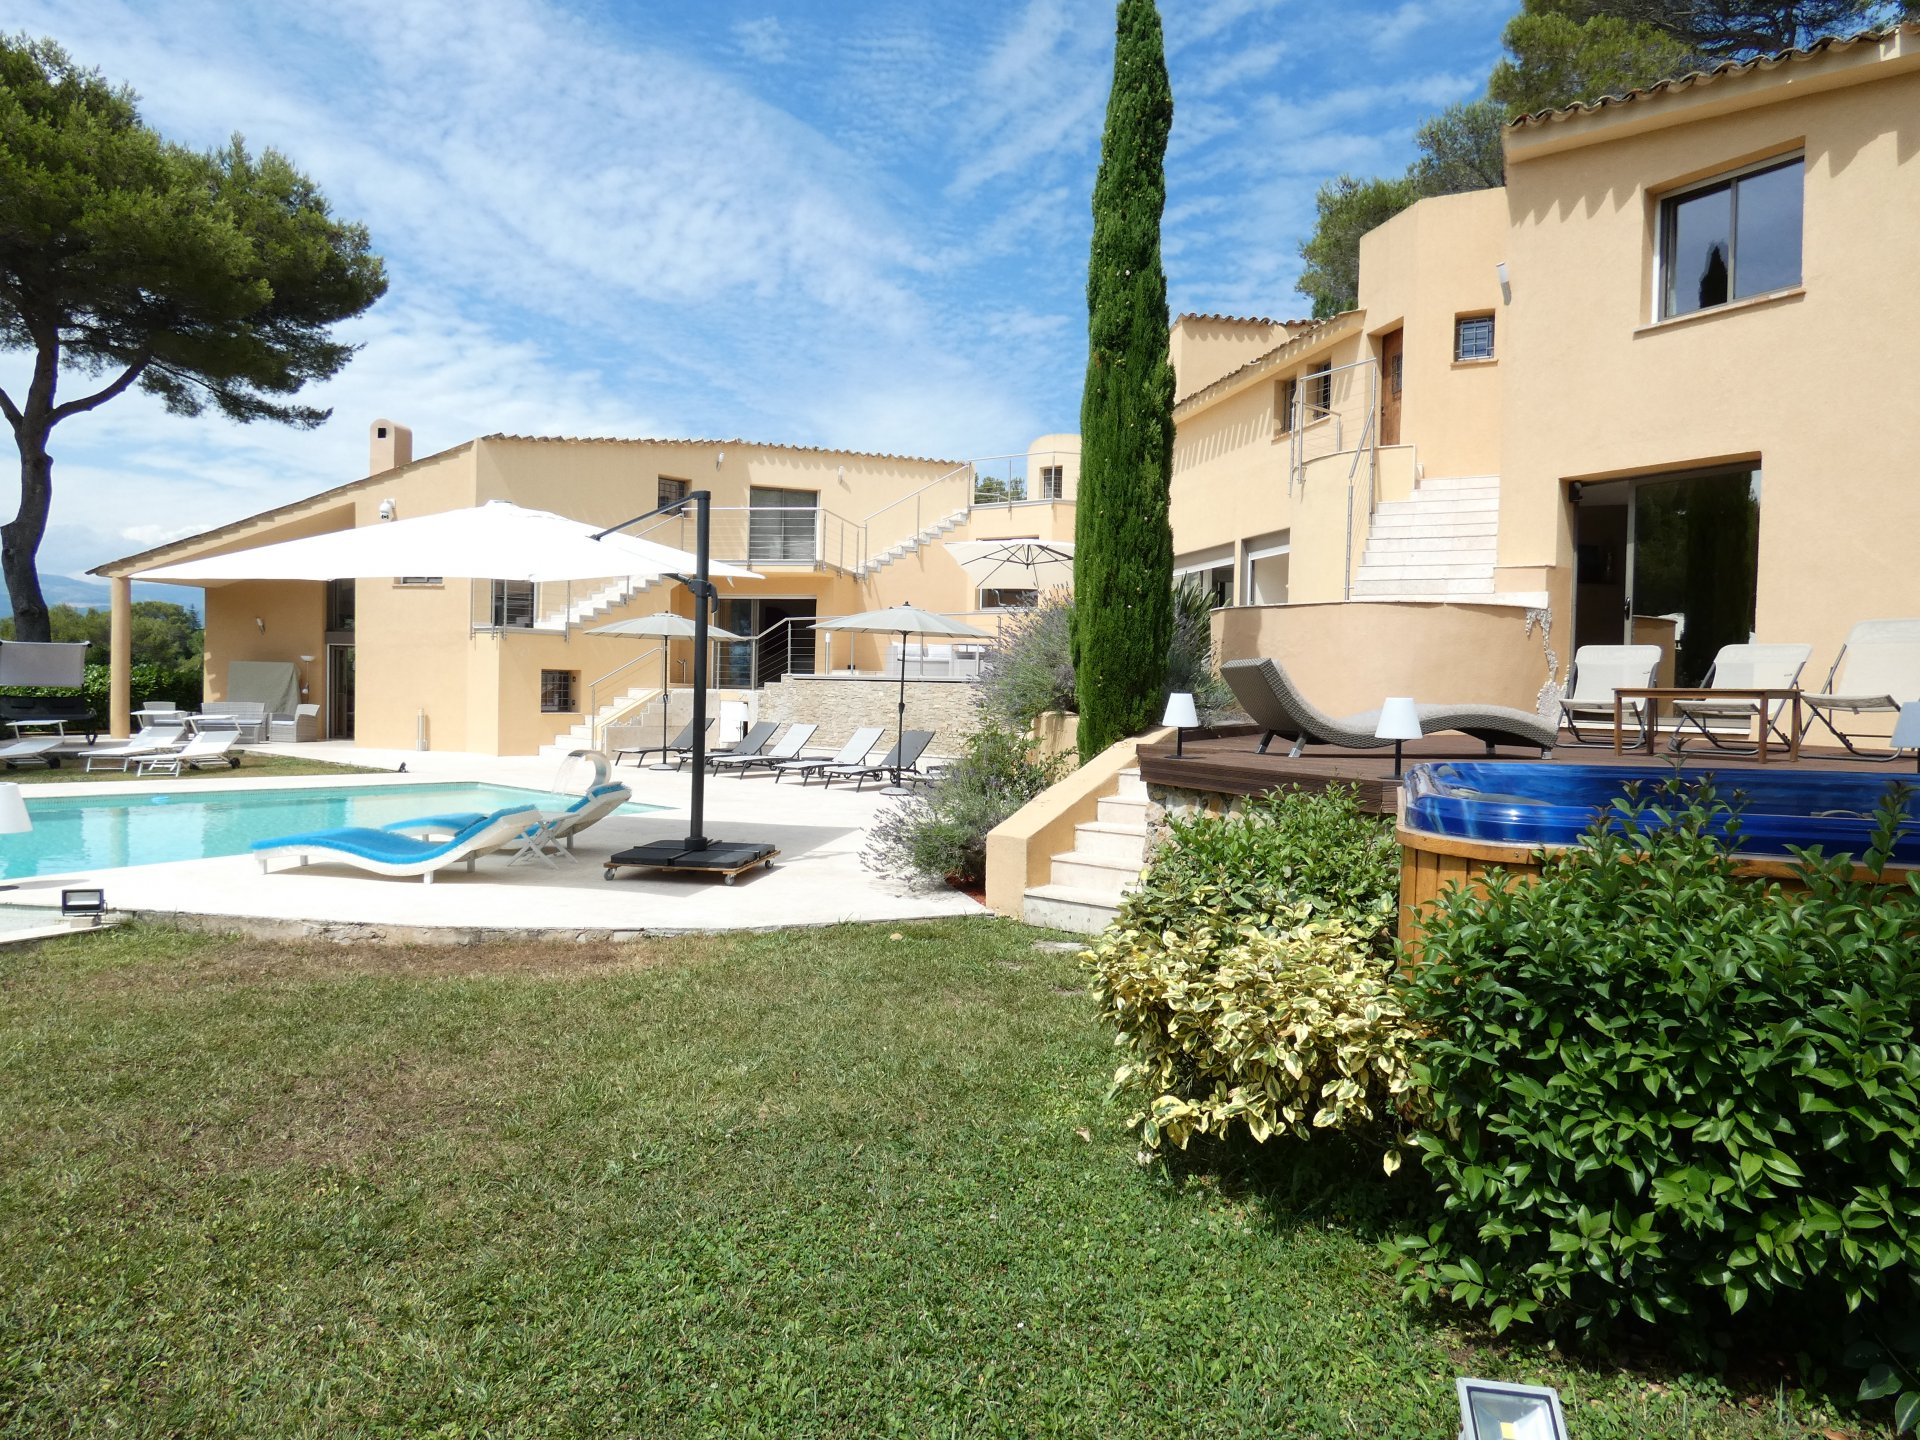 VERY SPACIOUS VILLA WITH DOMINANT WIEW ON THE OLD VILLAGE